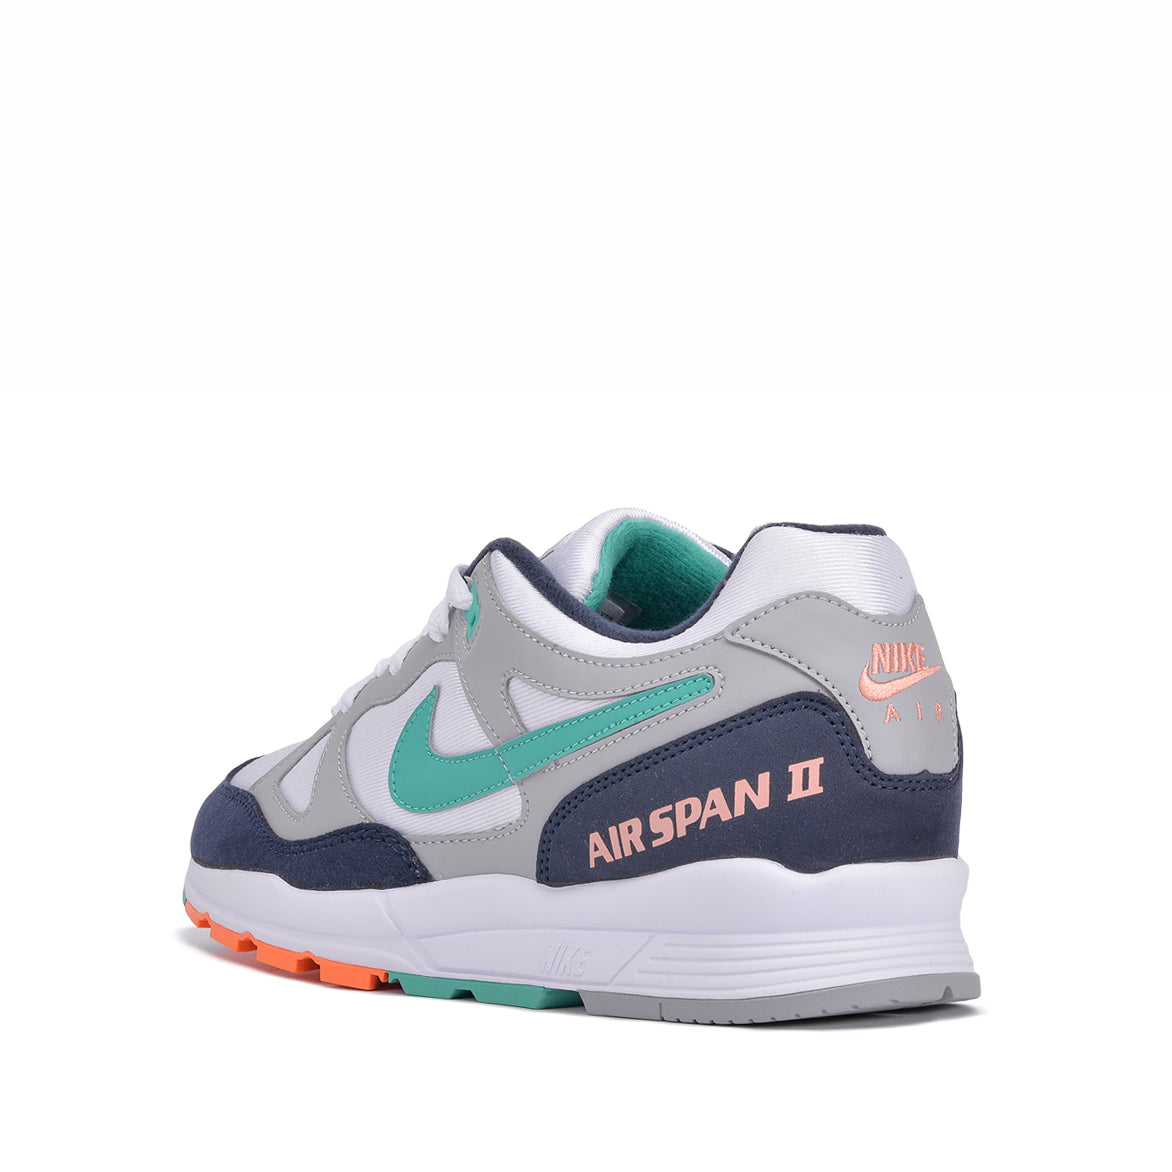 AIR SPAN II - WOLF GREY / KINETIC GREEN